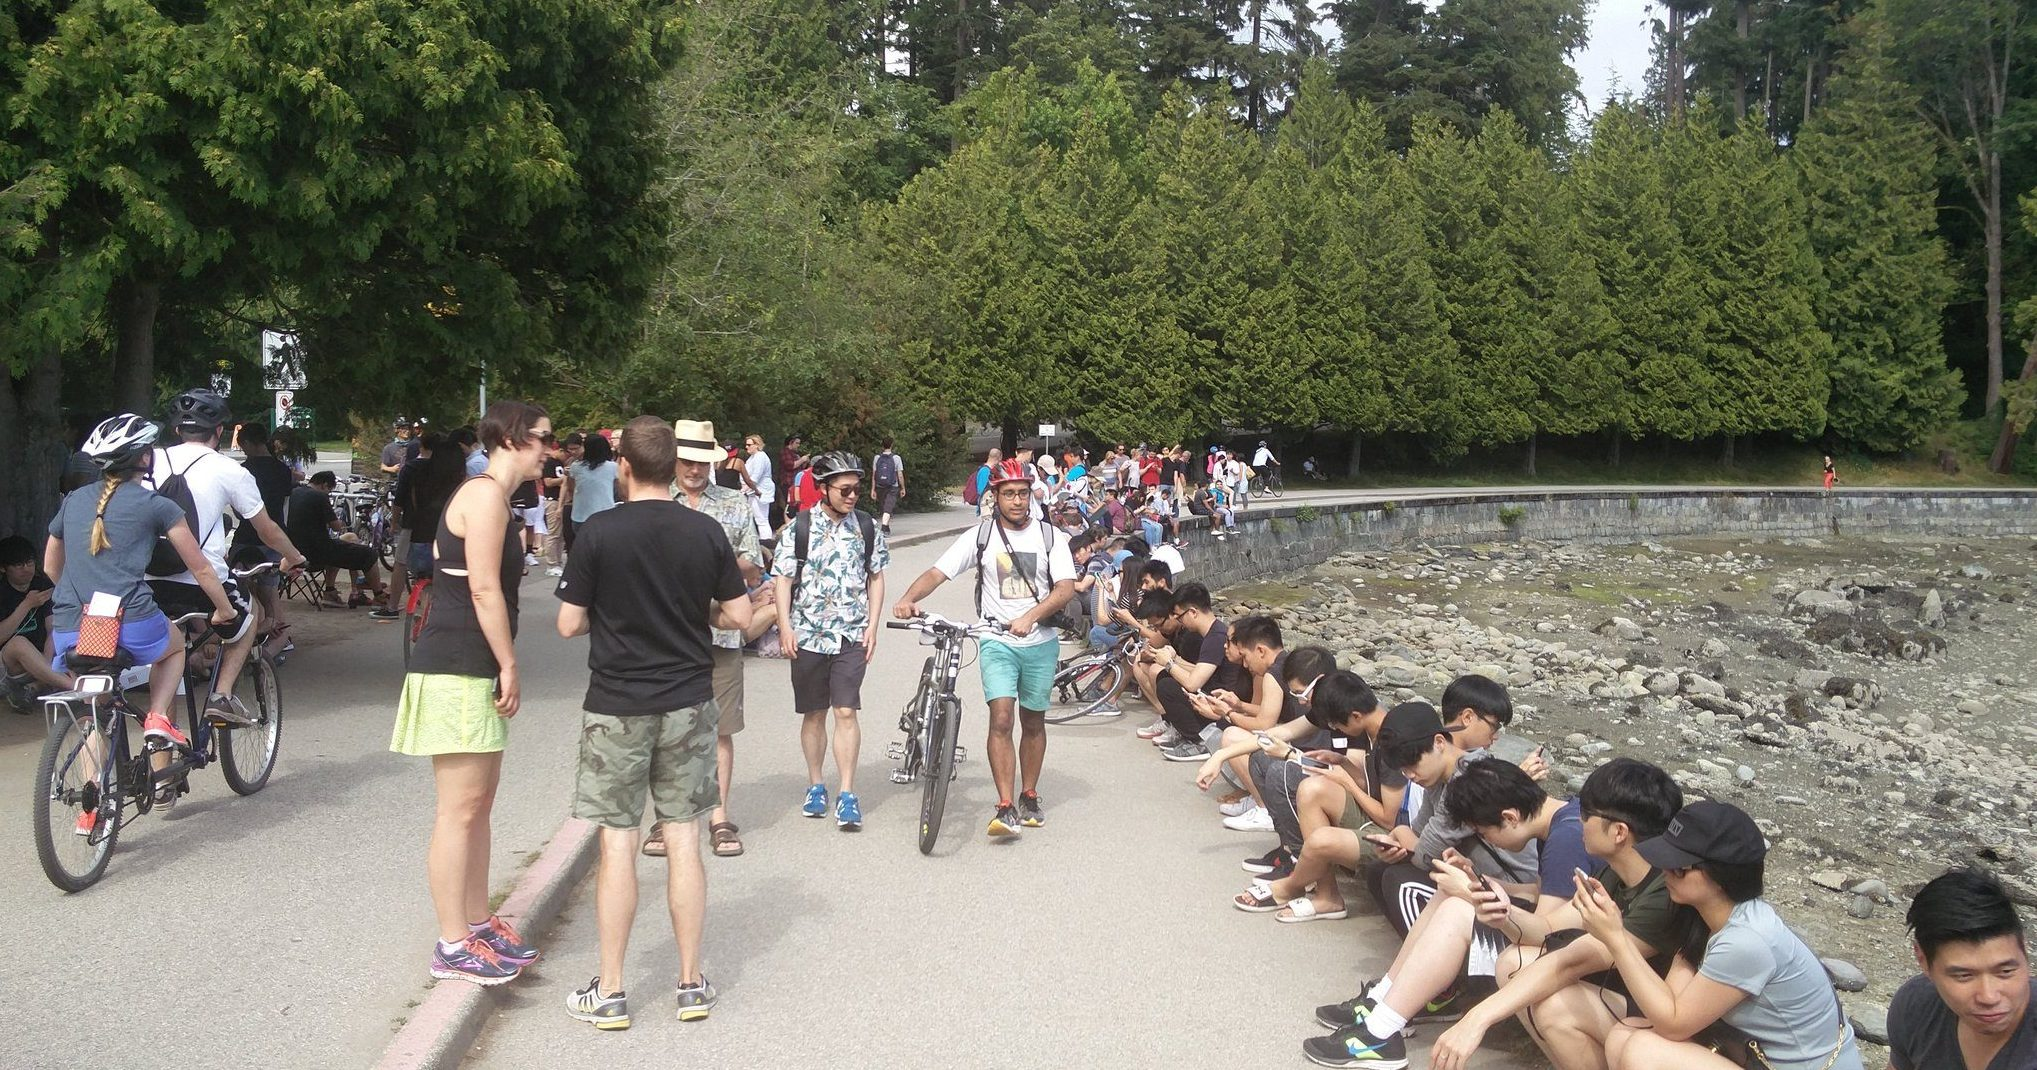 Cancelled Pokémon GO event still attracts hundreds to Stanley Park [PHOTOS]